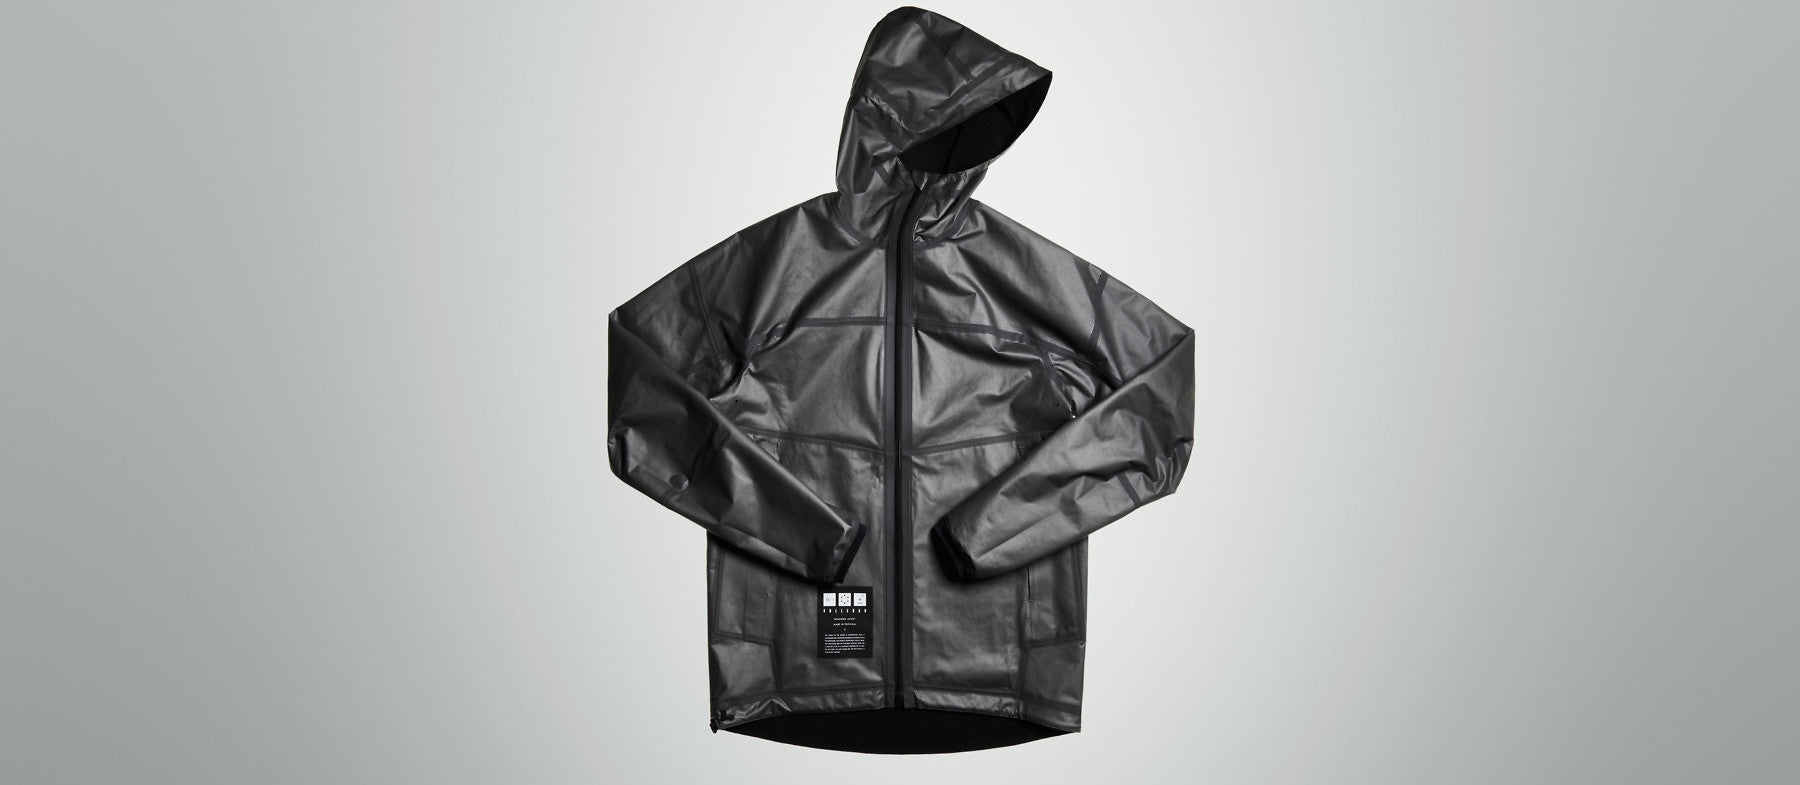 The world's first graphene jacket